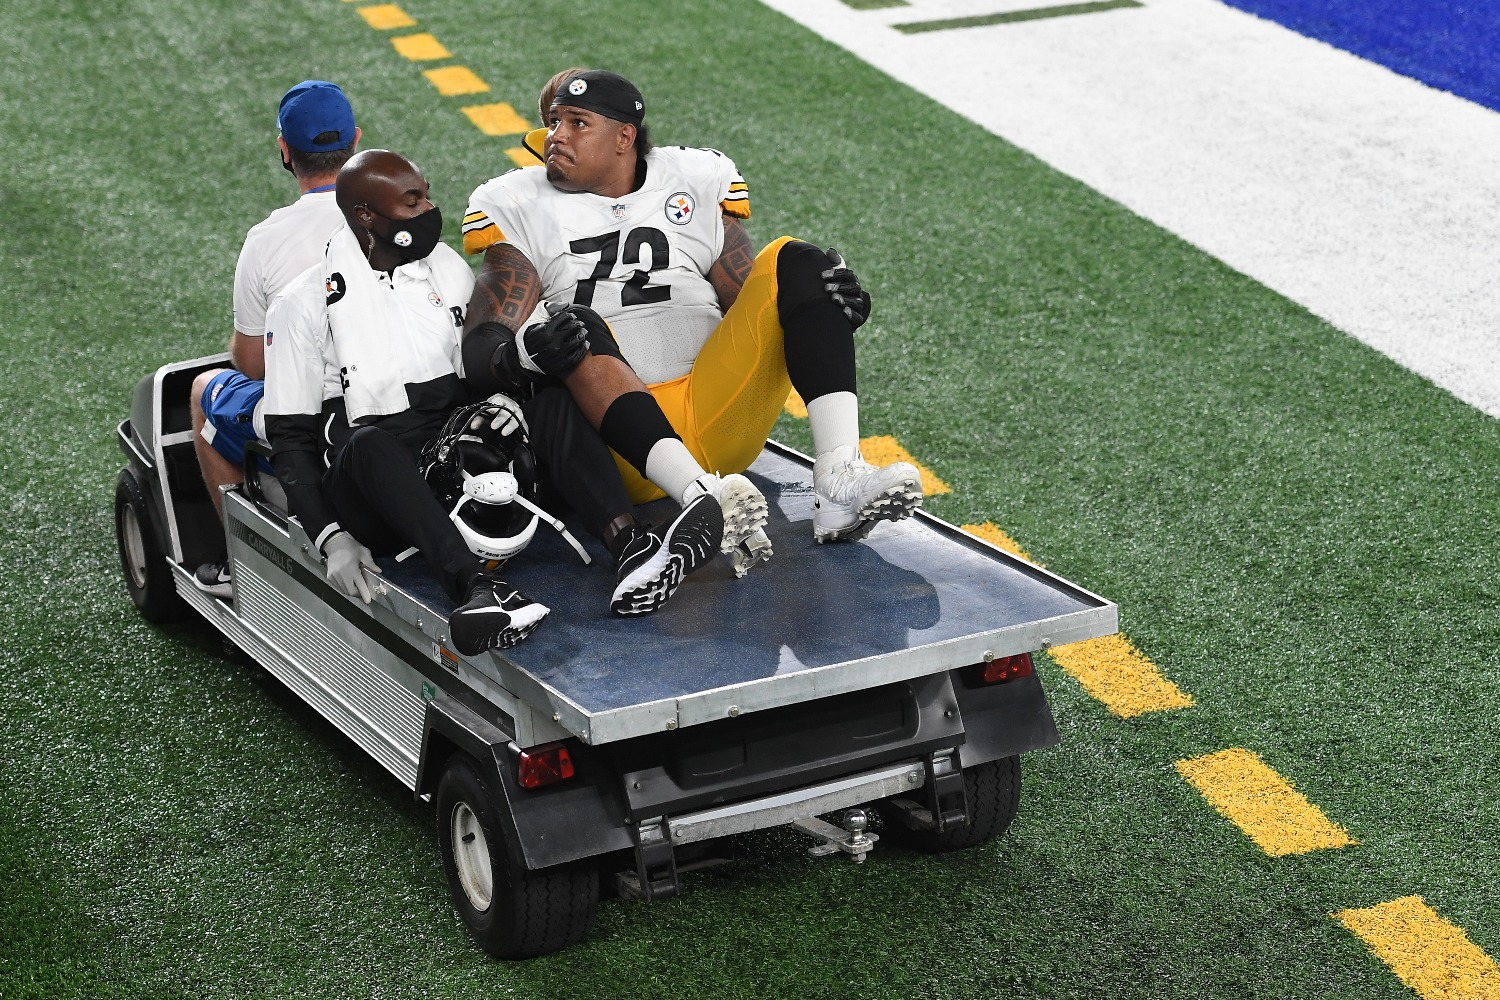 The Pittsburgh Steelers suffered a huge blow to their Super Bowl hopes after starting right tackle Zach Banner tore his ACL.